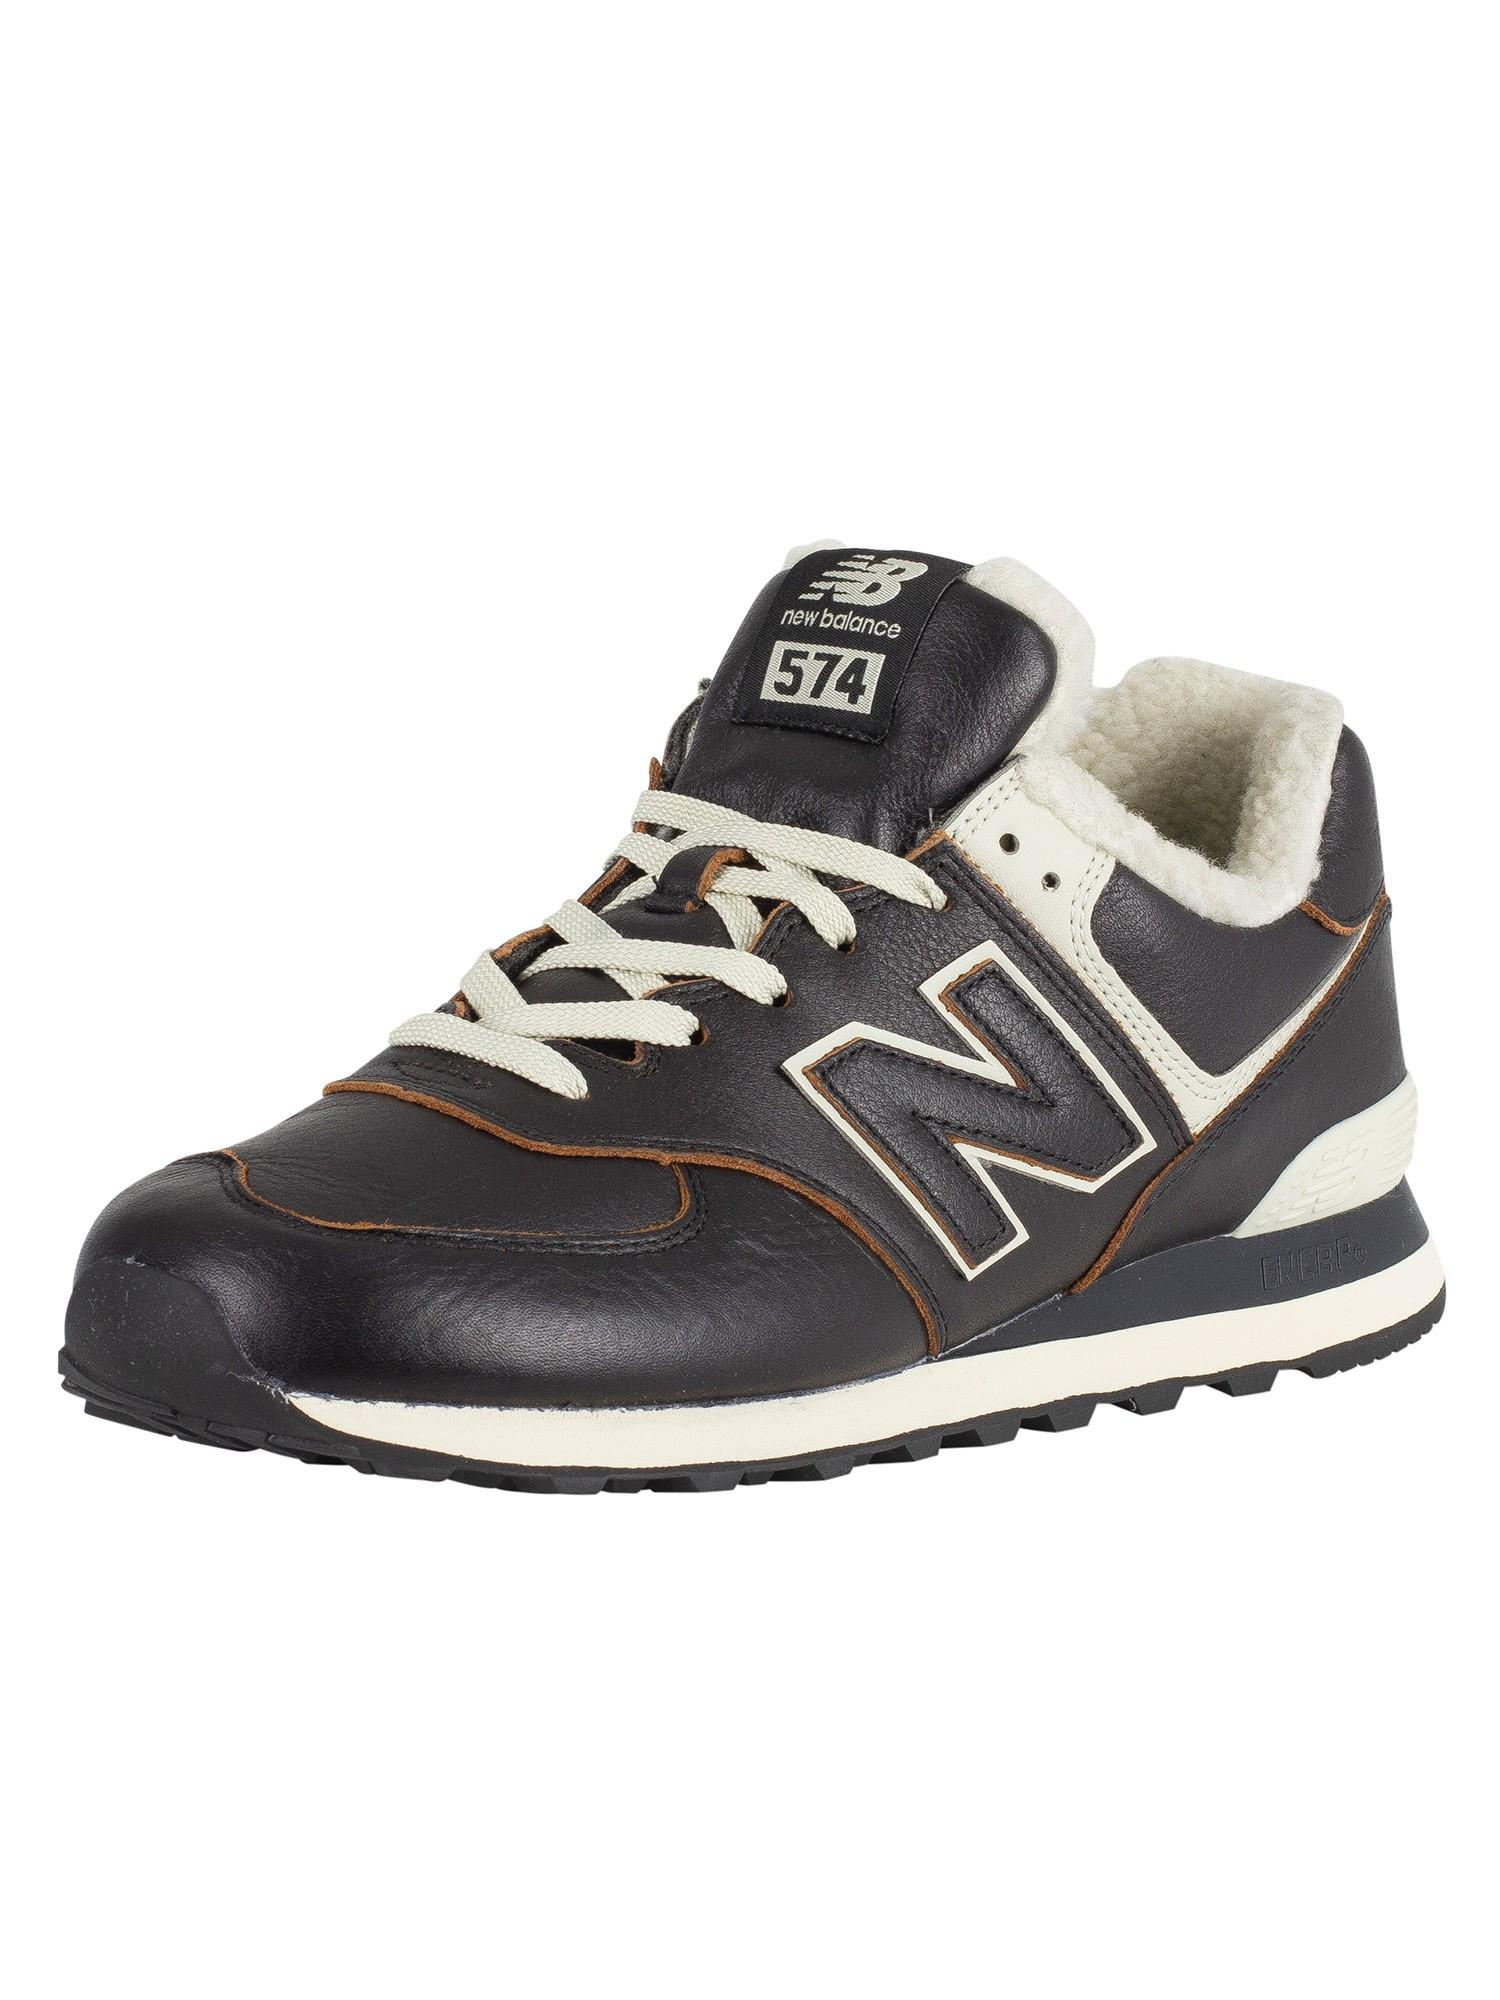 Brown New Balance Men/'s 574 Leather Trainers